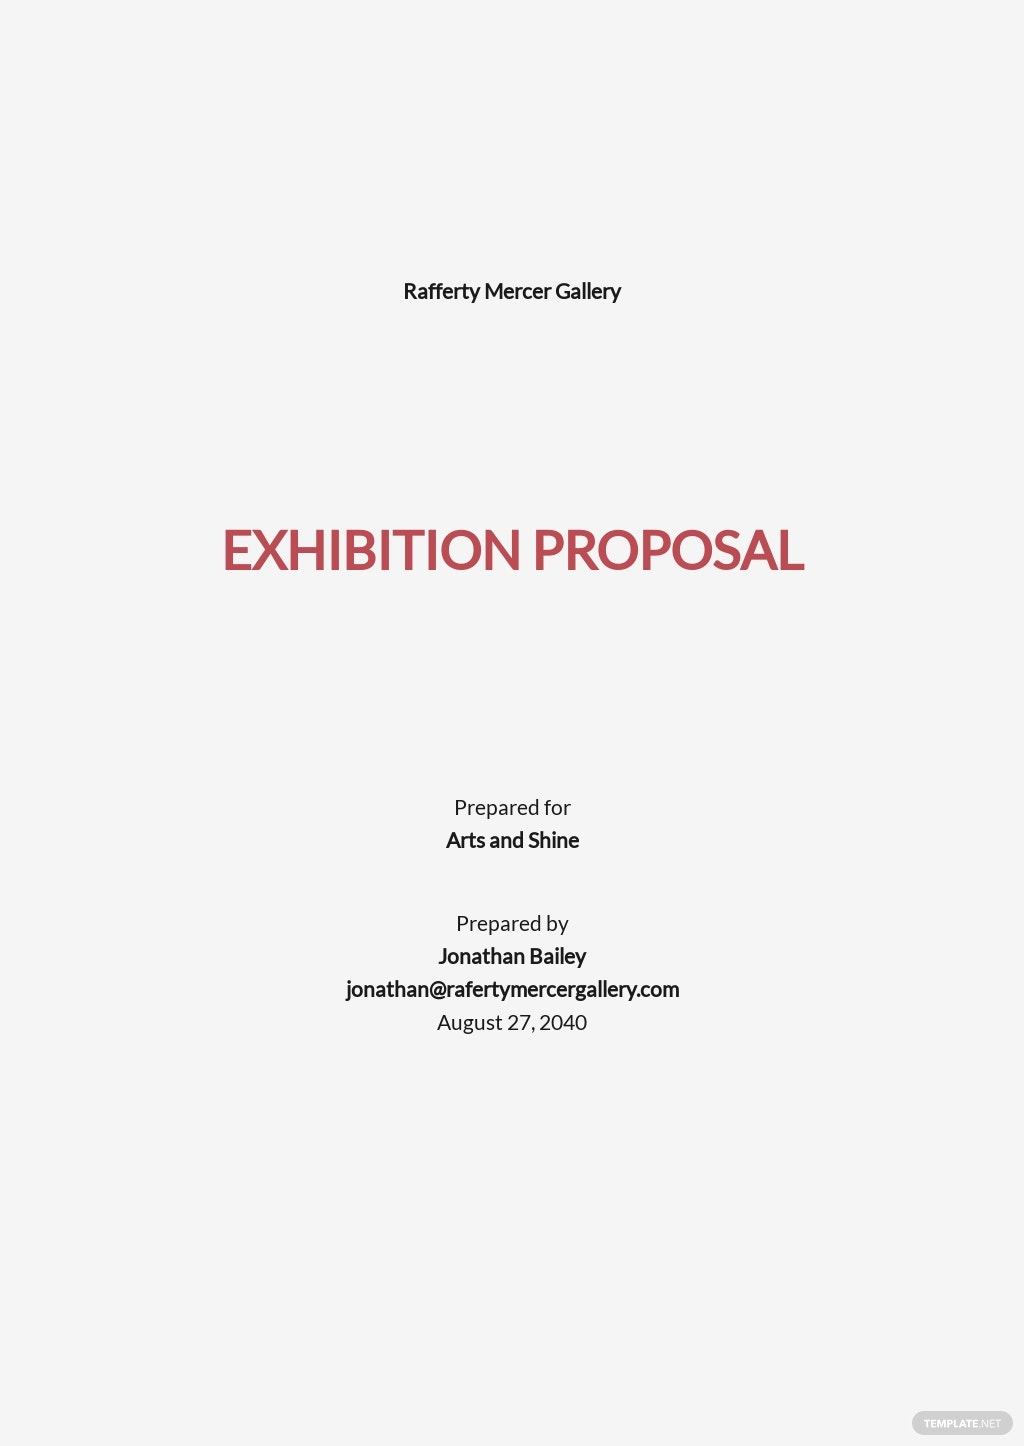 Exhibition Proposal Outline Template.jpe